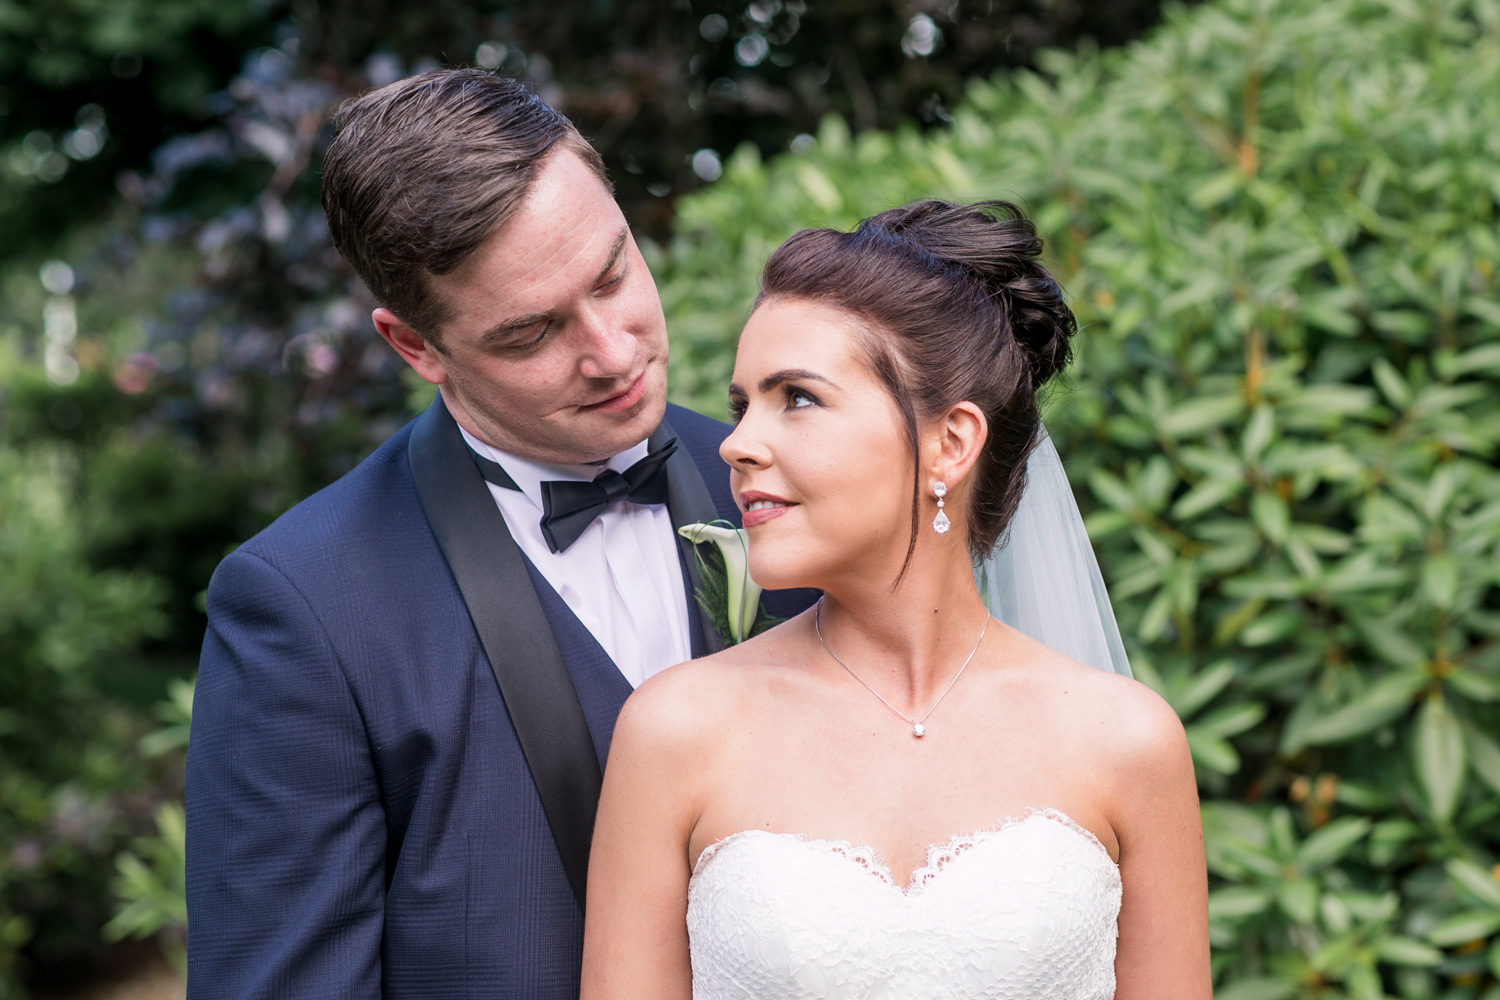 bride and groom close up photograph looking at each other summer wedding at slieve russell hotel in ireland